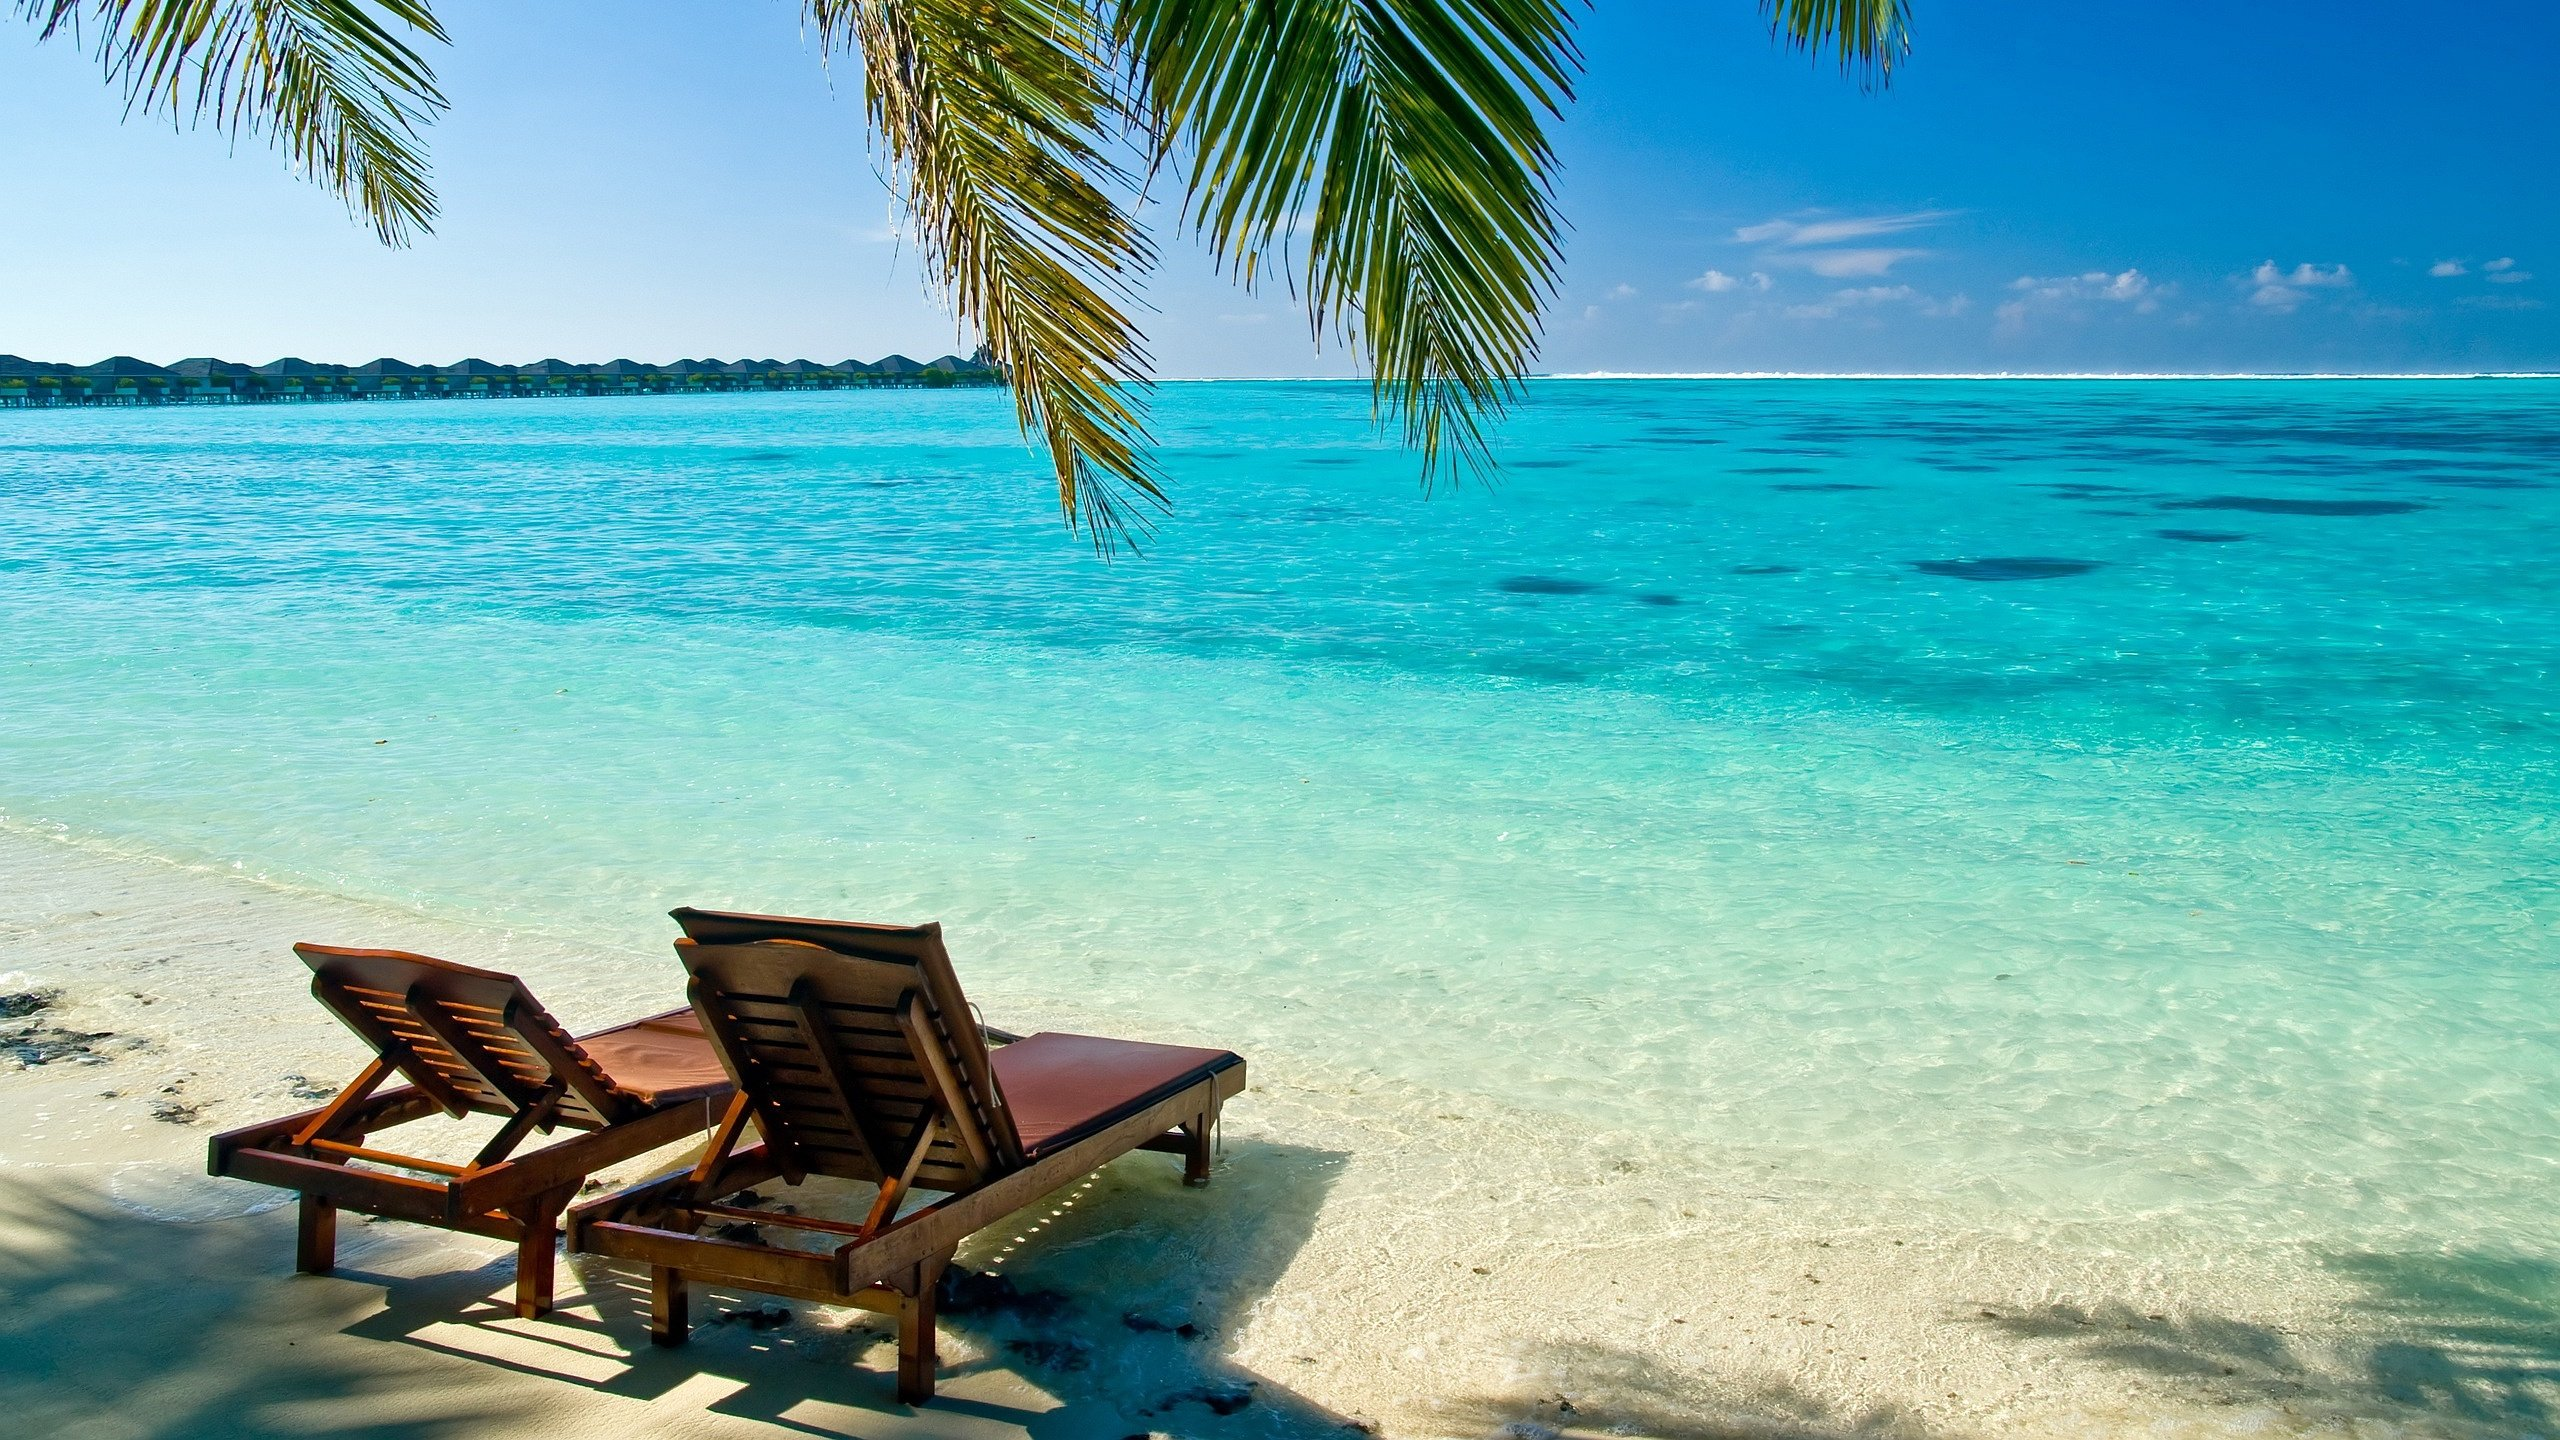 HD Tropical Beach Backgrounds 2560x1440